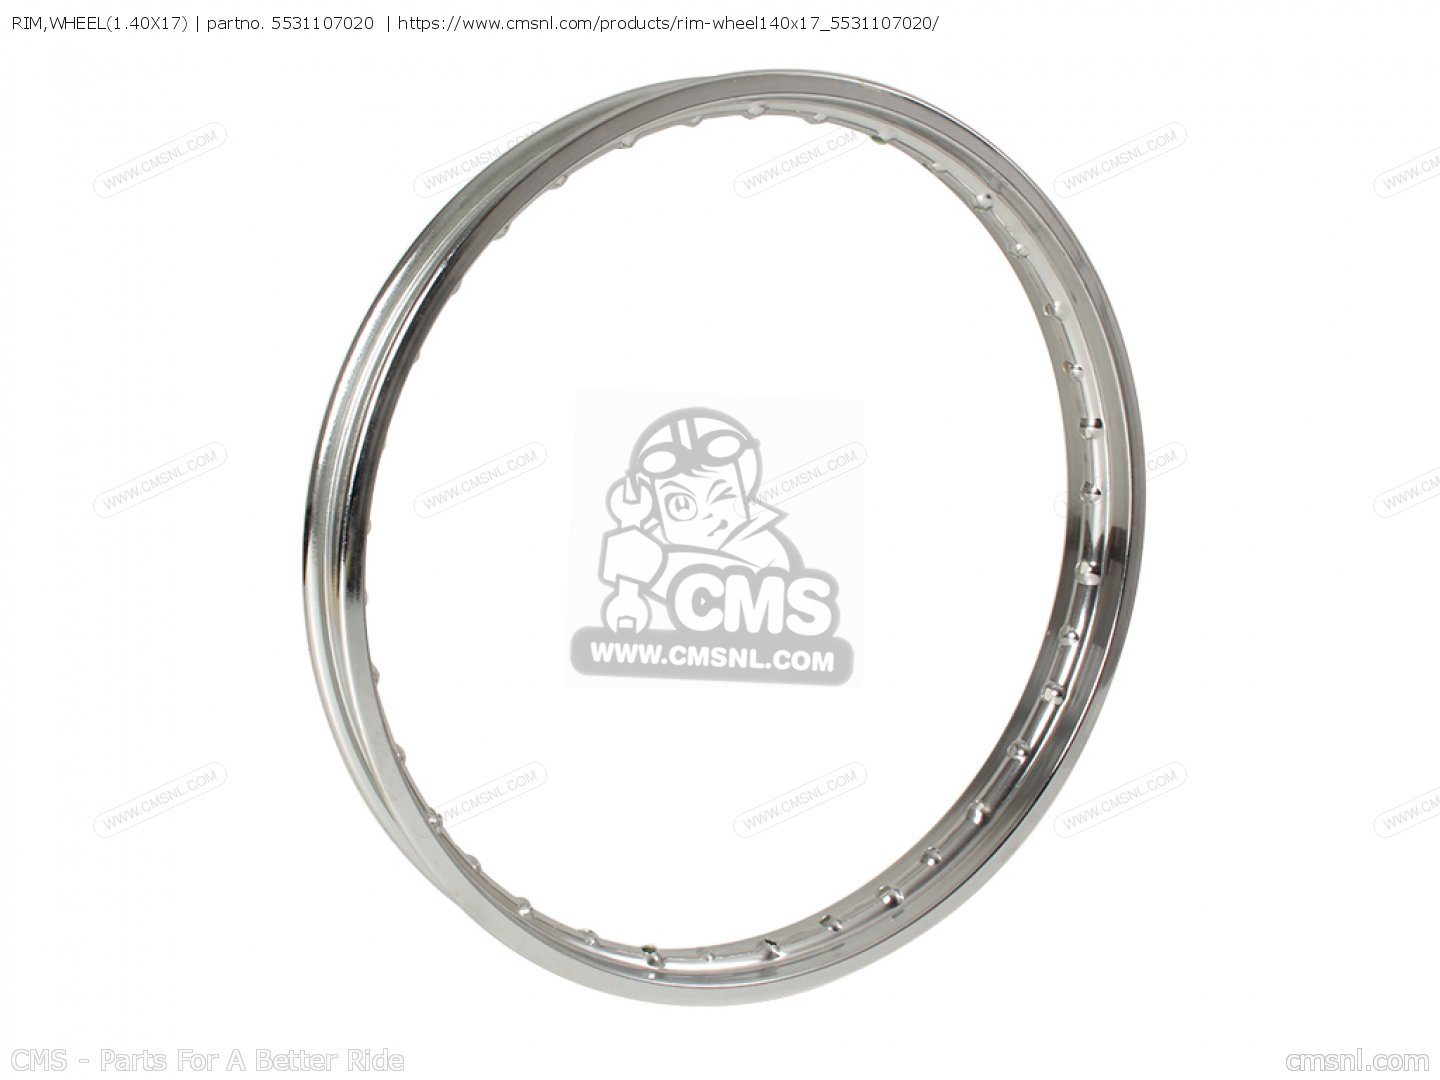 Rim Wheel 1 40x17 For K10 K11 K15 Usa E03